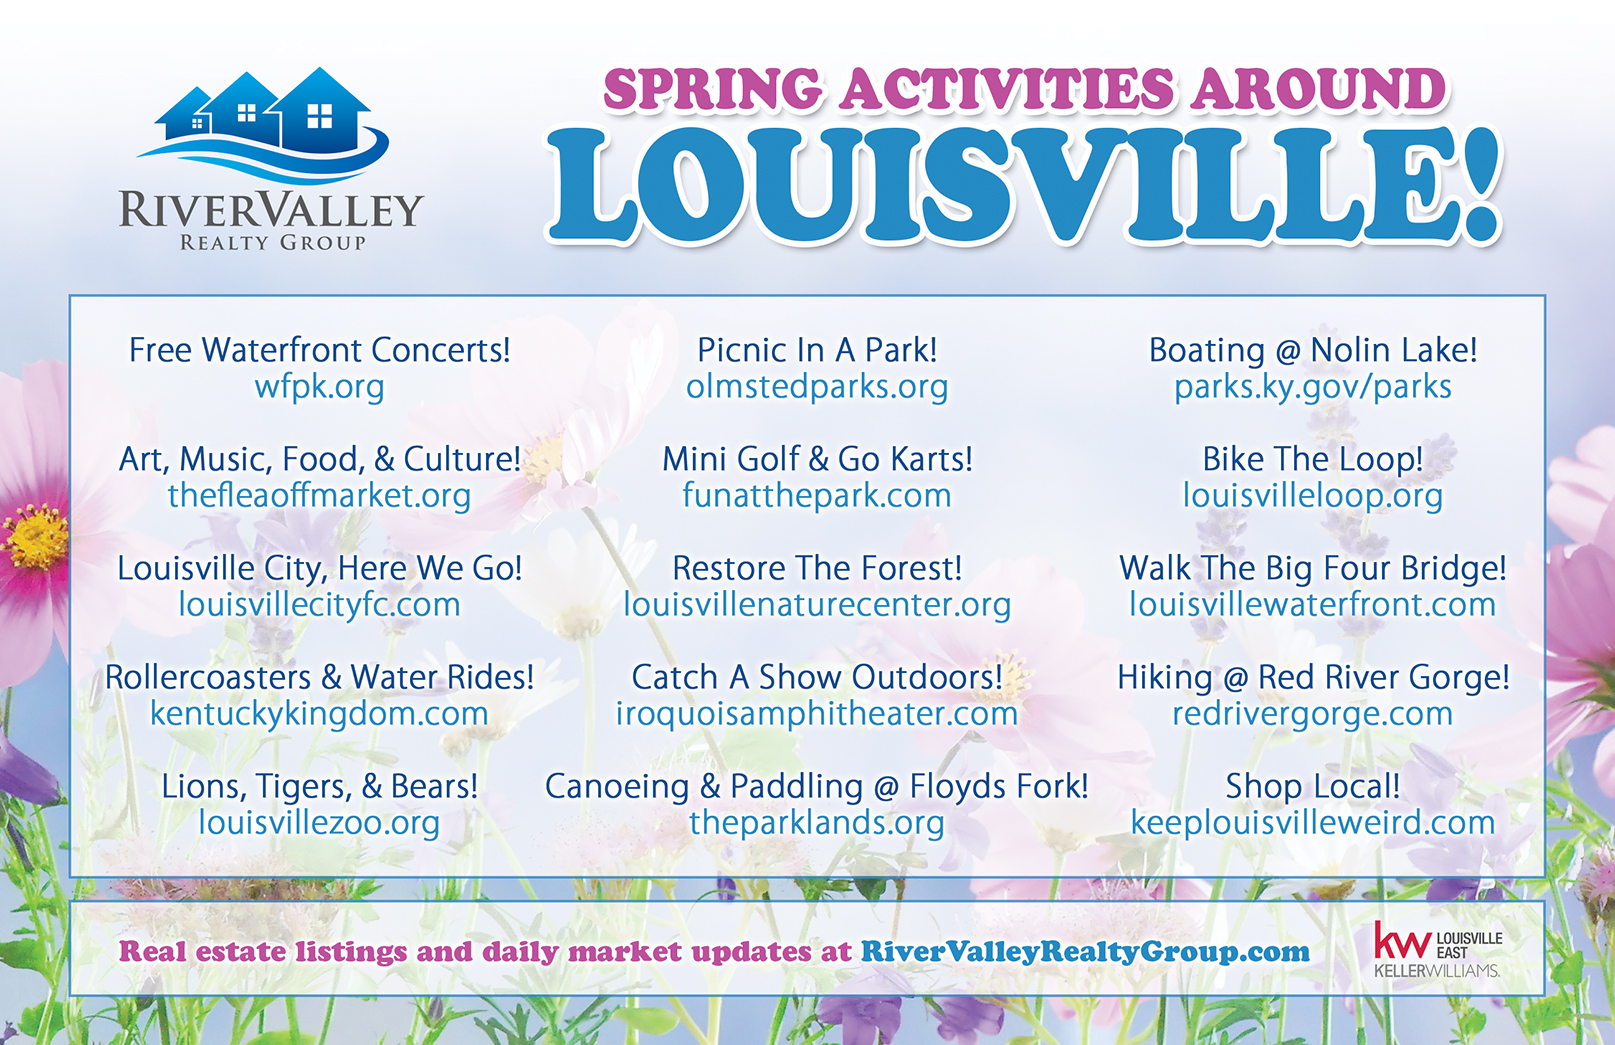 Spring activities to check out around Louisville.